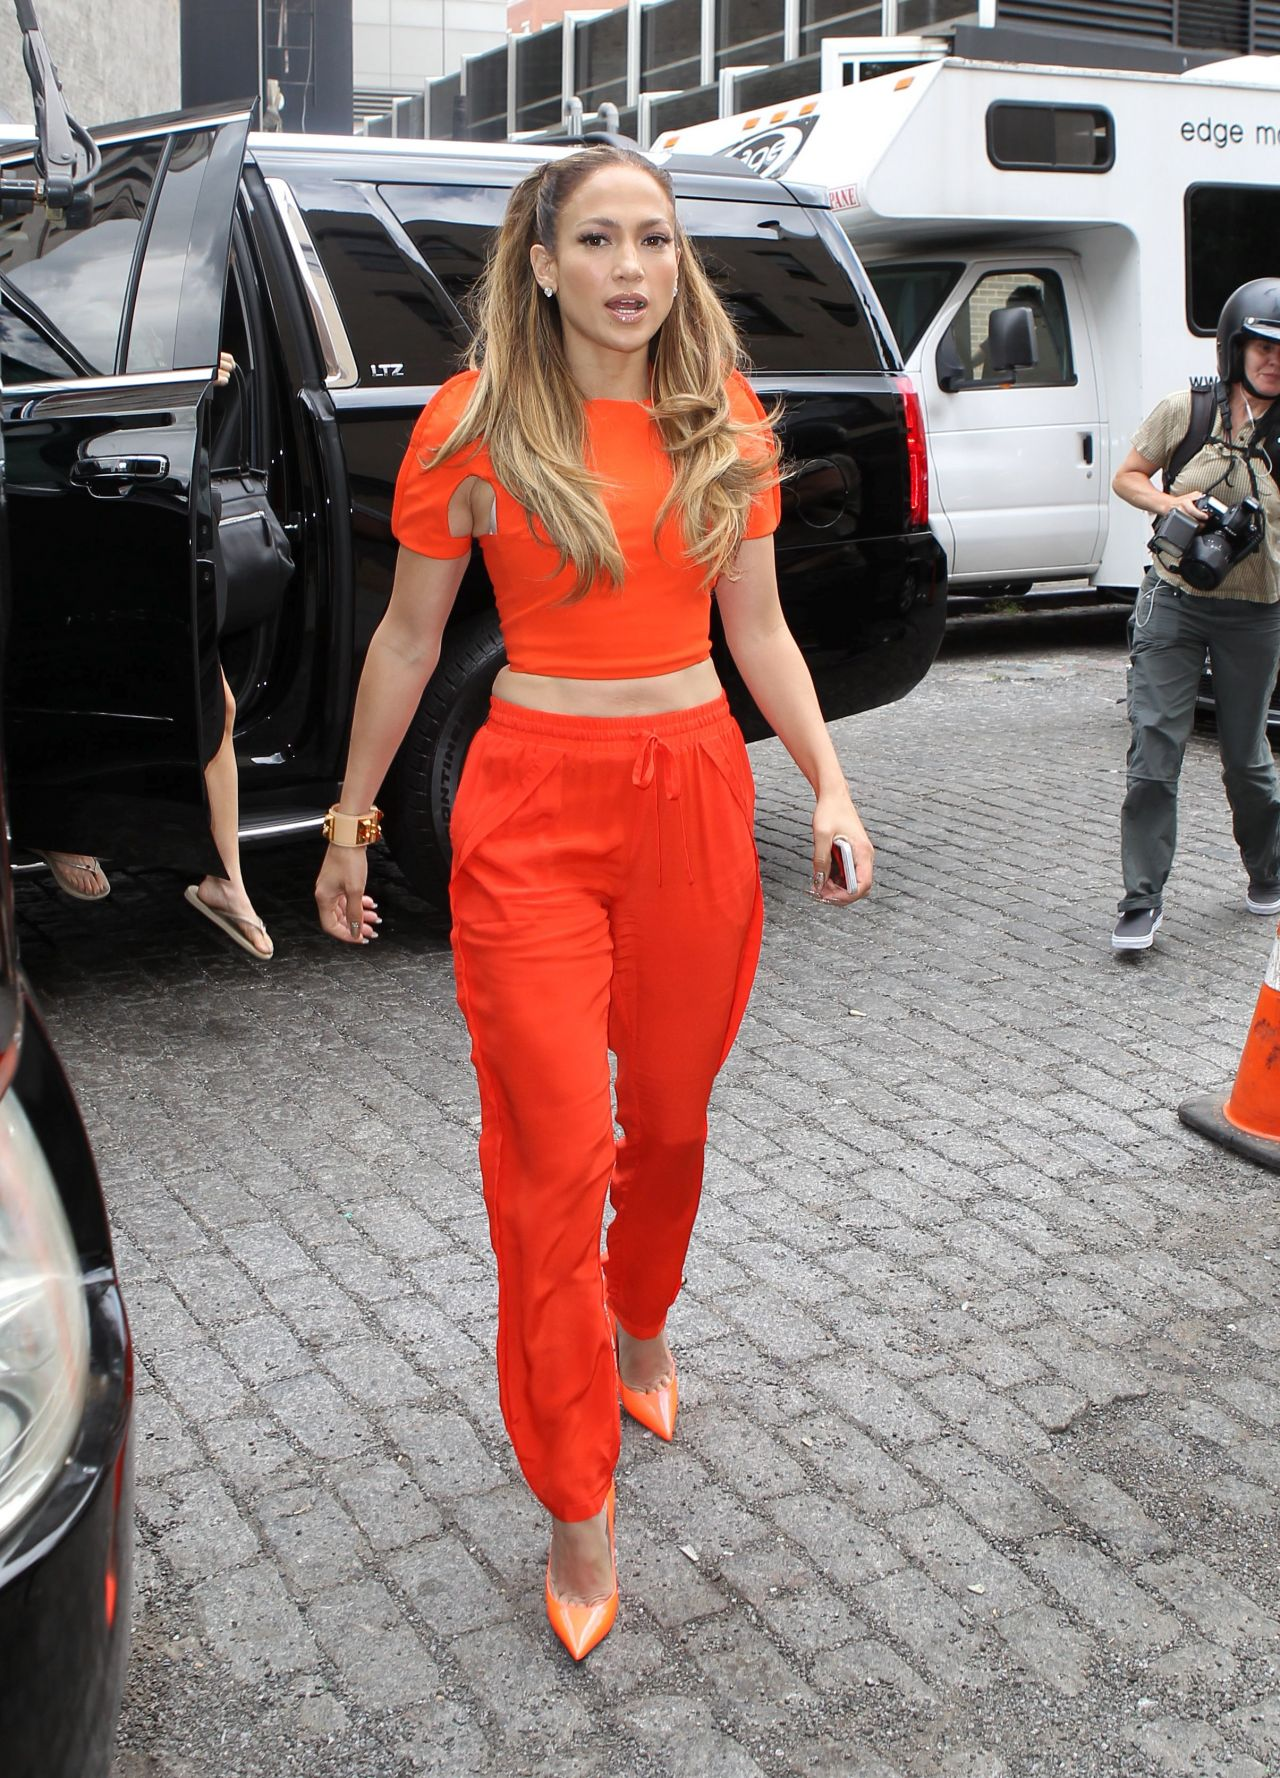 Jennifer Lopez Leaving Her Apartment wearing a orange crop top and pants in New York City – September 2014